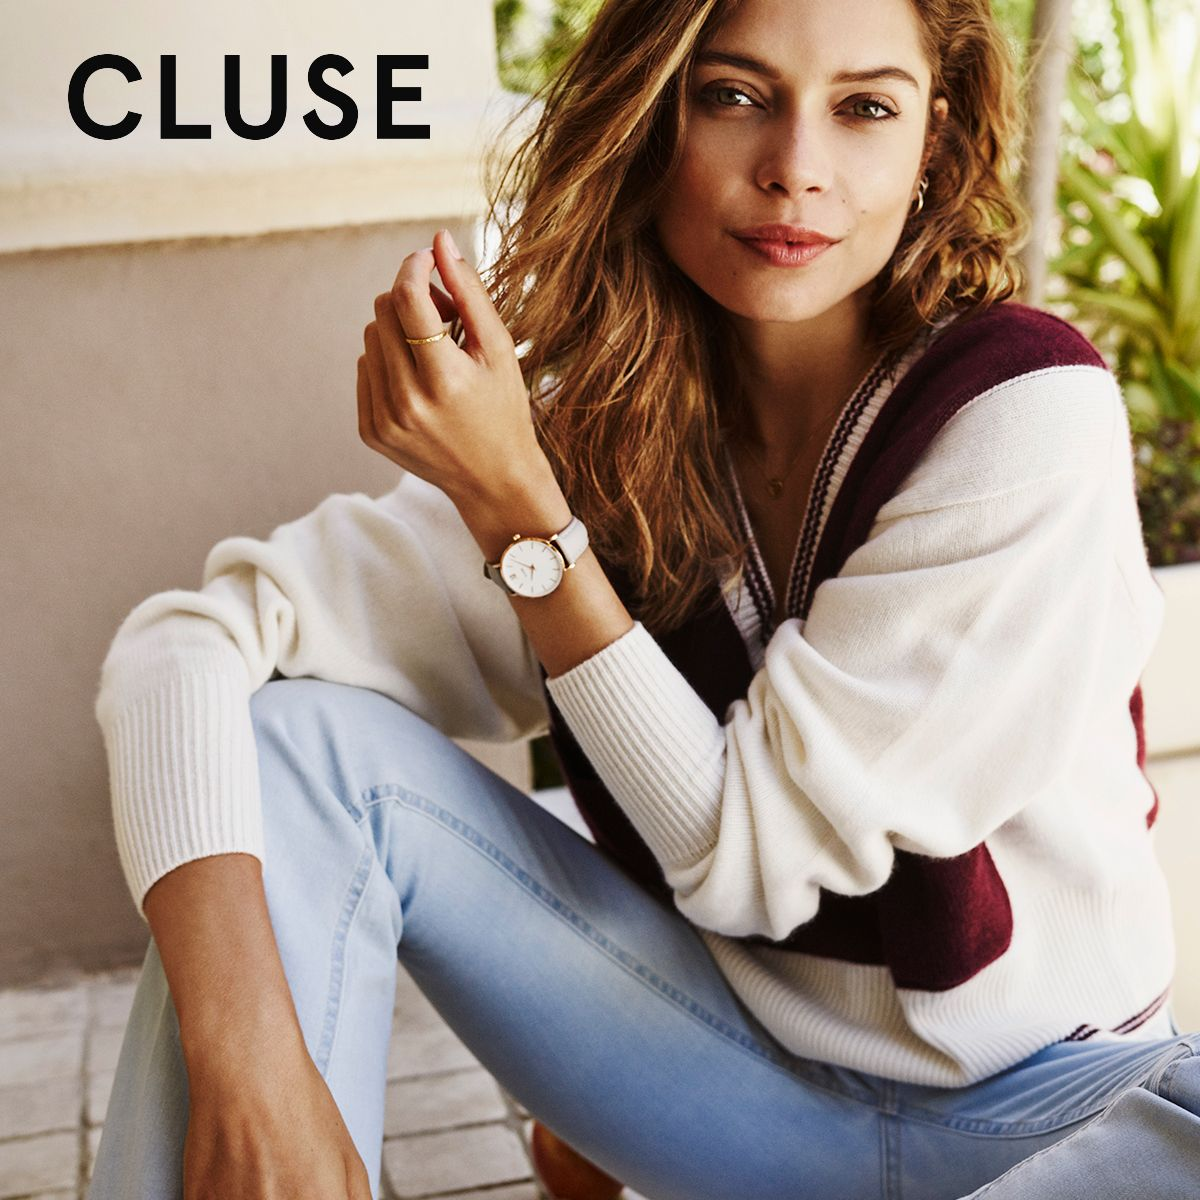 We&#39;ve got 15% off all #CLUSE #watches.  Take a look &gt;  http:// bit.ly/2nY4IQk  &nbsp;  <br>http://pic.twitter.com/NoJnWJlSTR